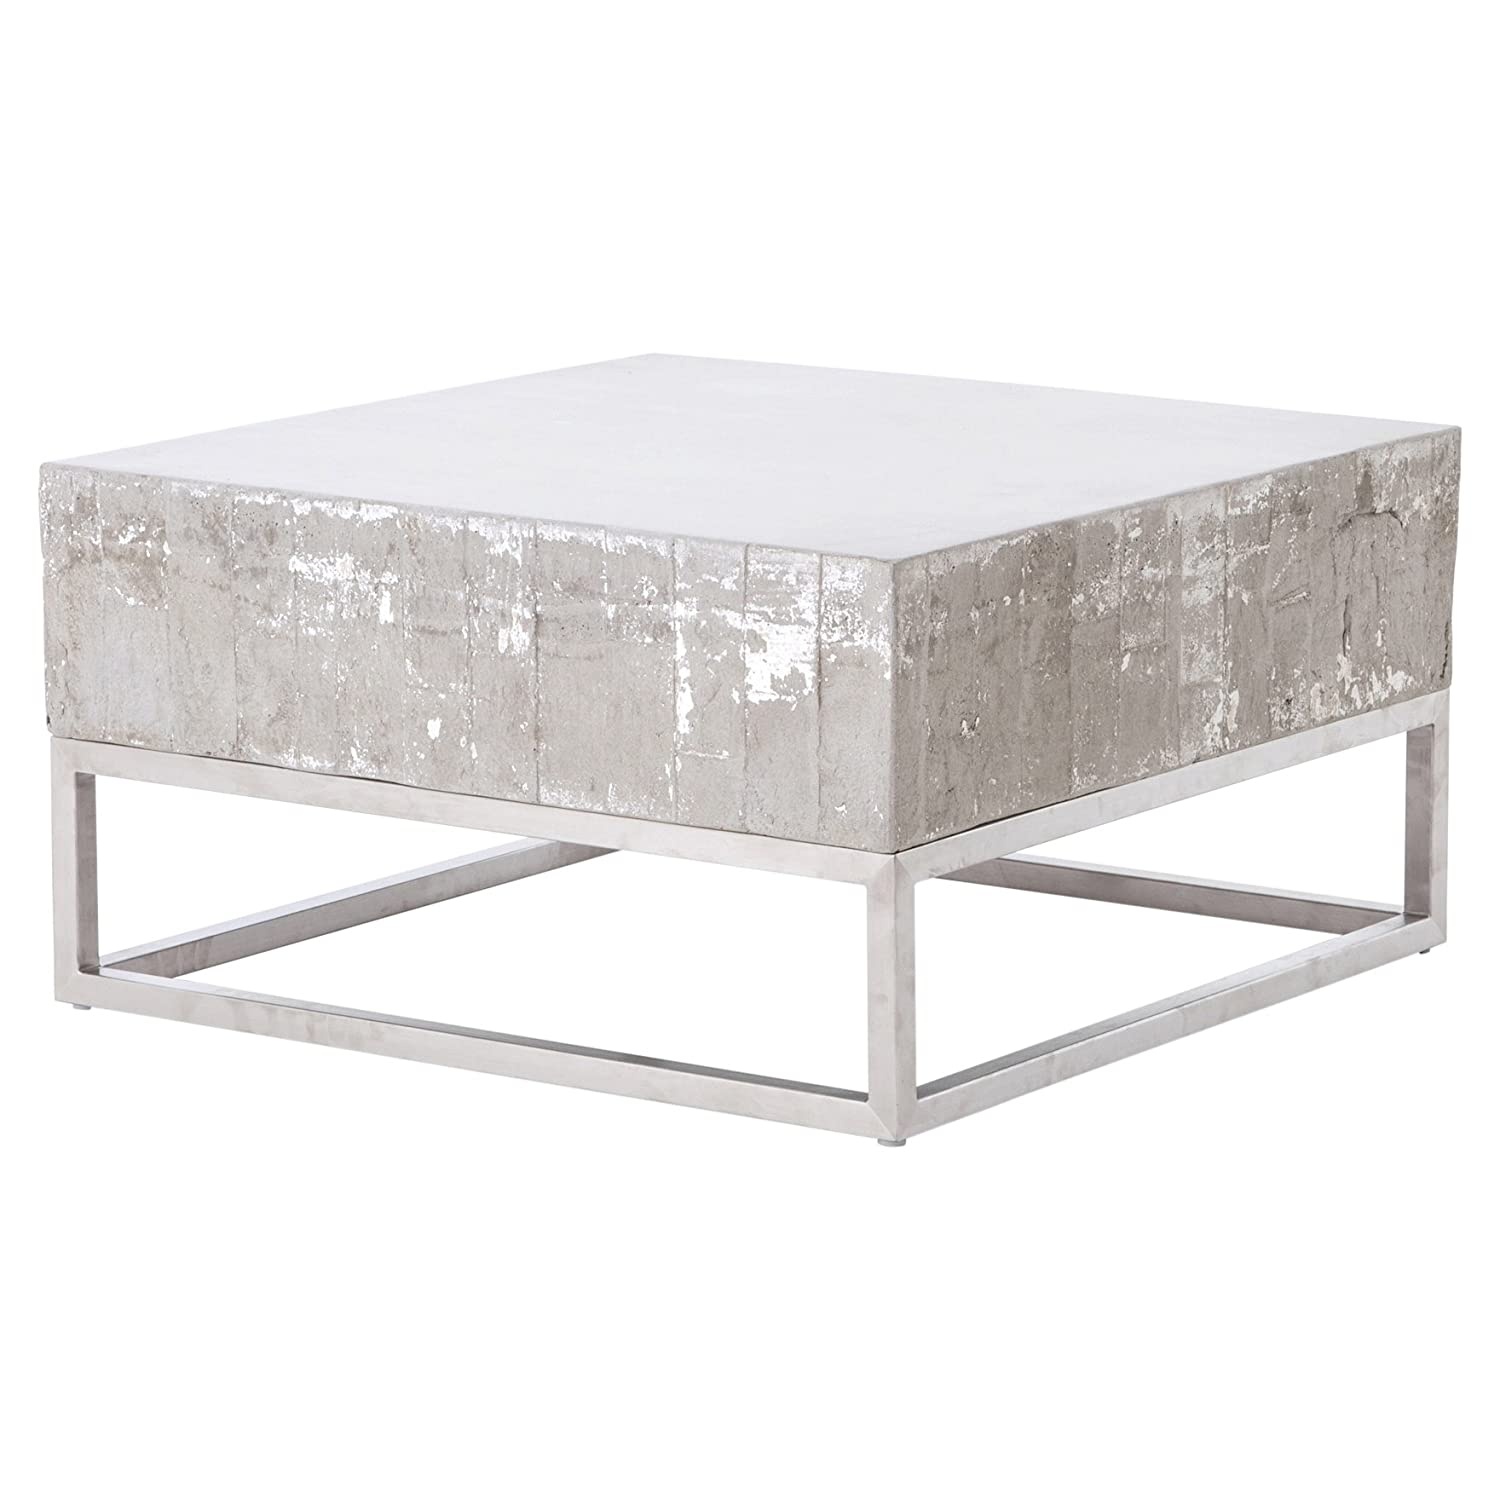 Attrayant Amazon.com: Kathy Kuo Home Maximus Concrete Chrome Distressed Square Block Coffee  Table: Kitchen U0026 Dining